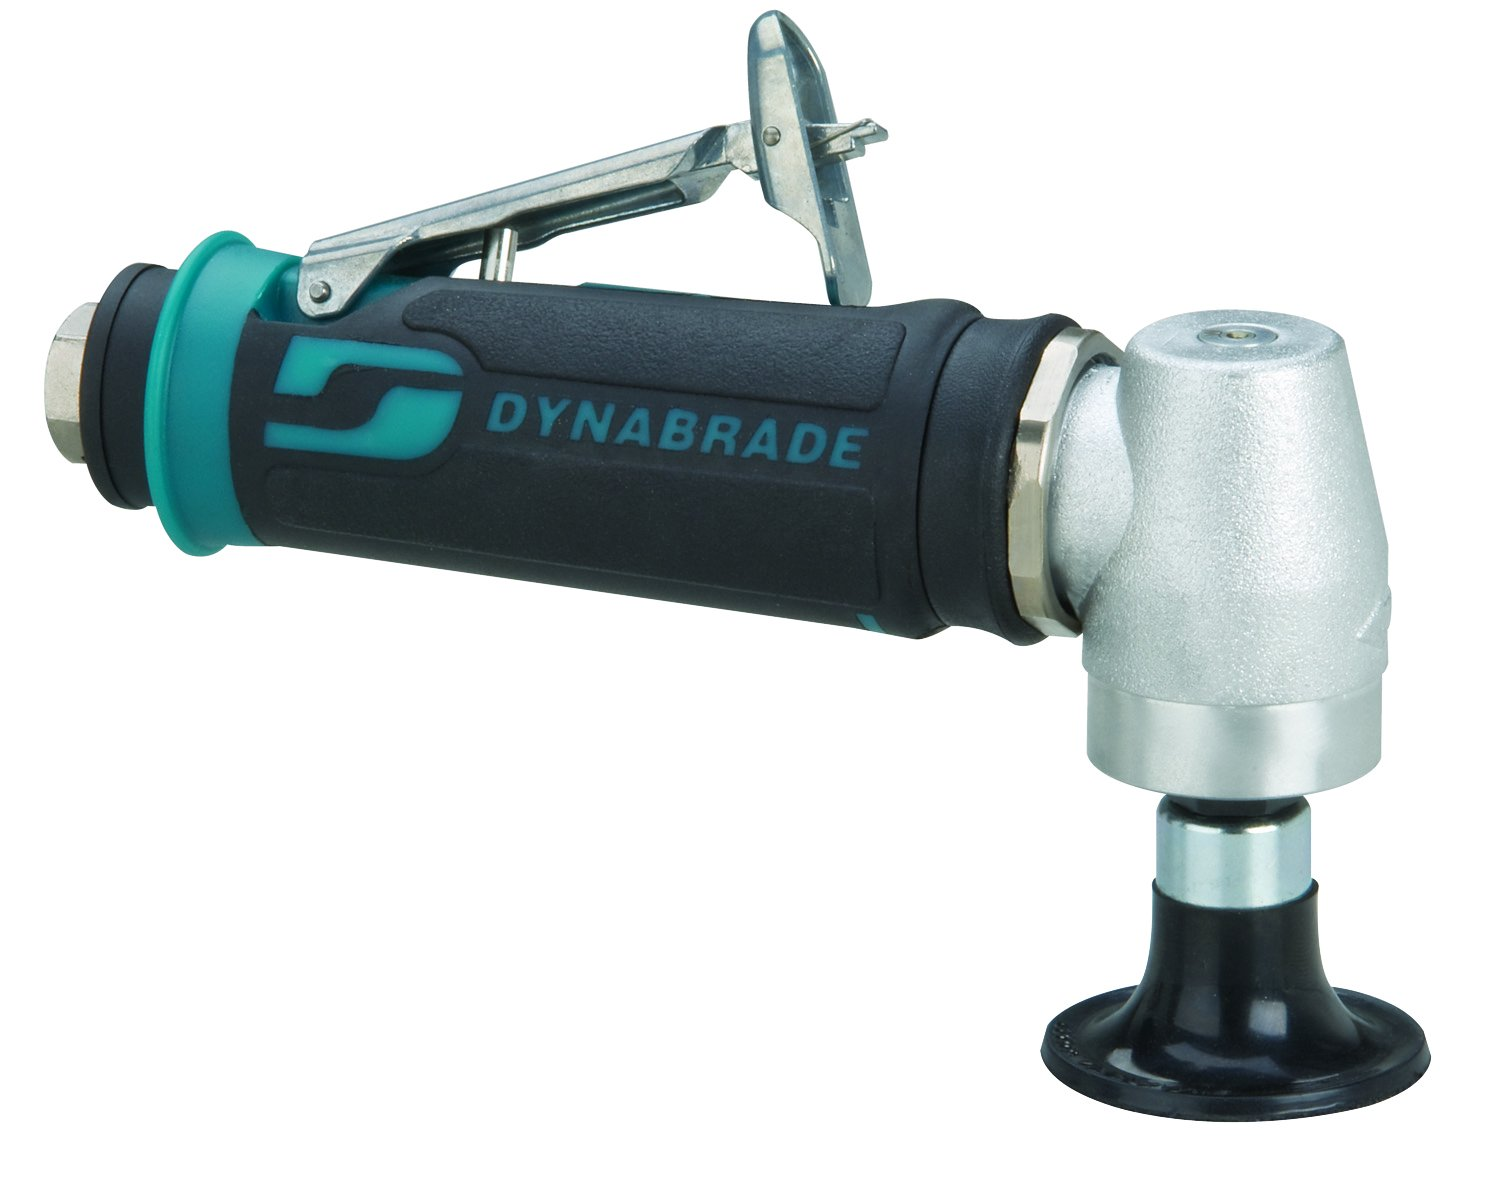 2-Inch 51mm Dynabrade 48542 Diameter Right Angle Disc Sander